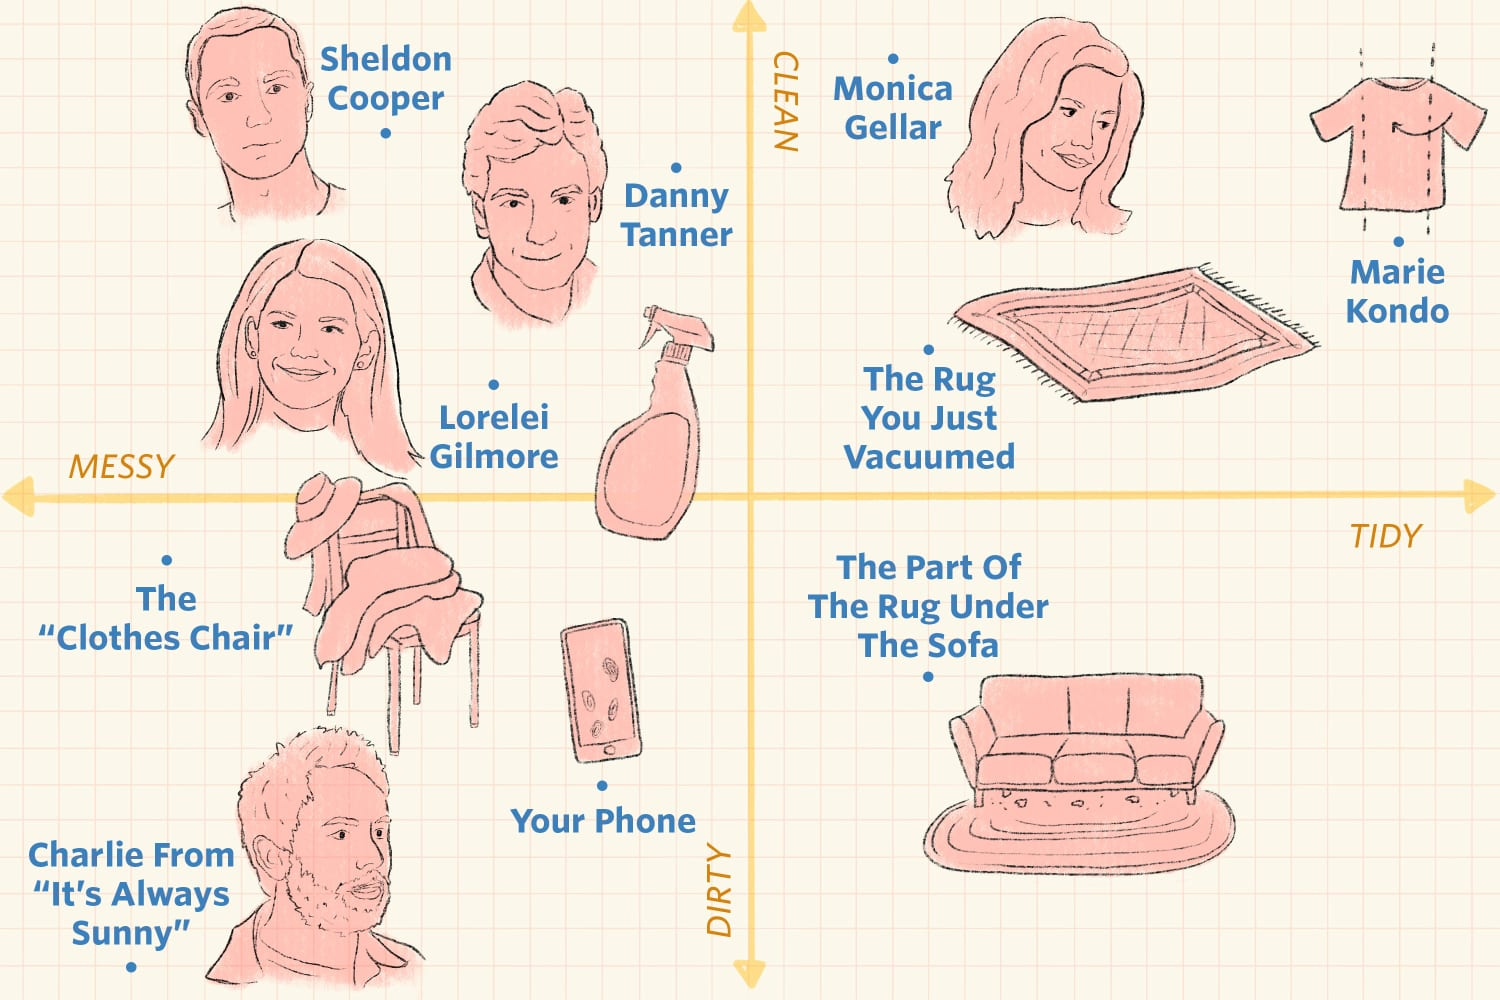 The Mess Matrix: Where Does Your Cleaning Style Fall?